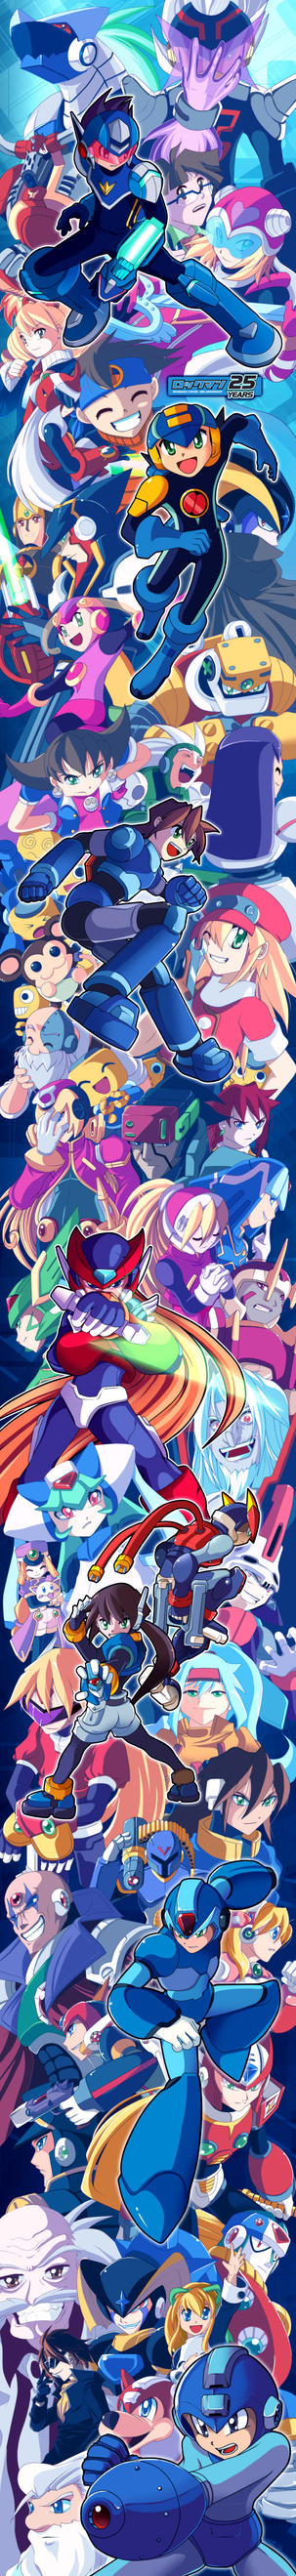 25 Years of MegaMan by suzuran